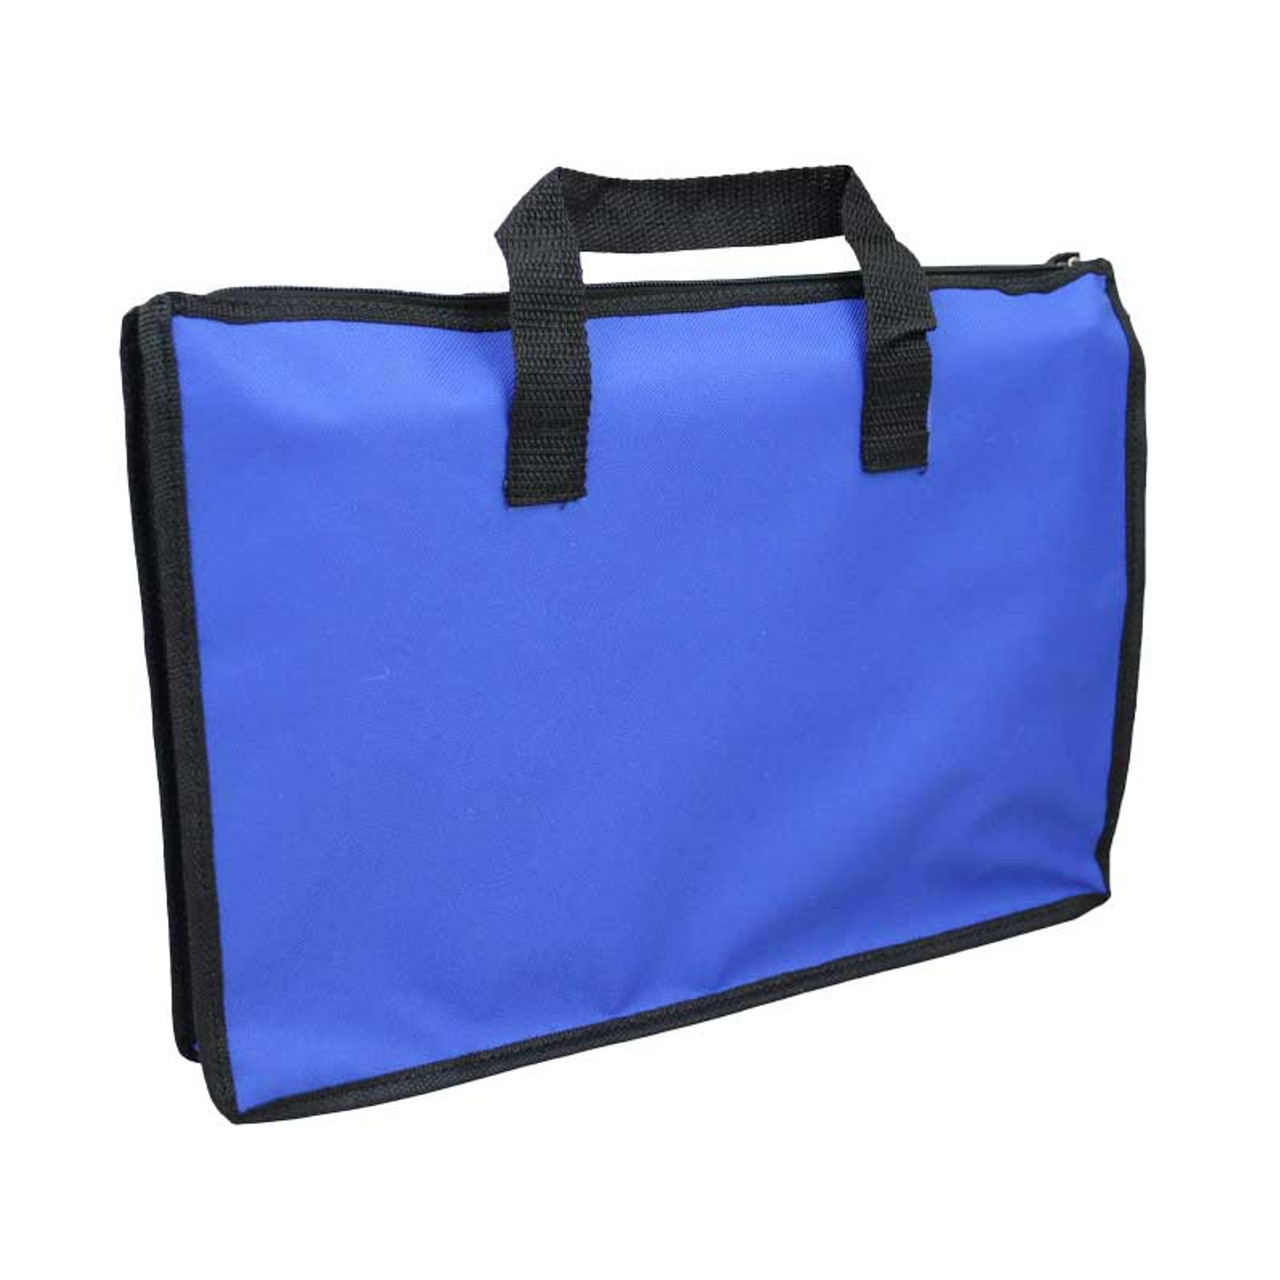 Watchmakers Tool Holder or Jewelry Tool Pouch Canvas Tote - Watch Repair  Kits  7d105dbb4bbbd